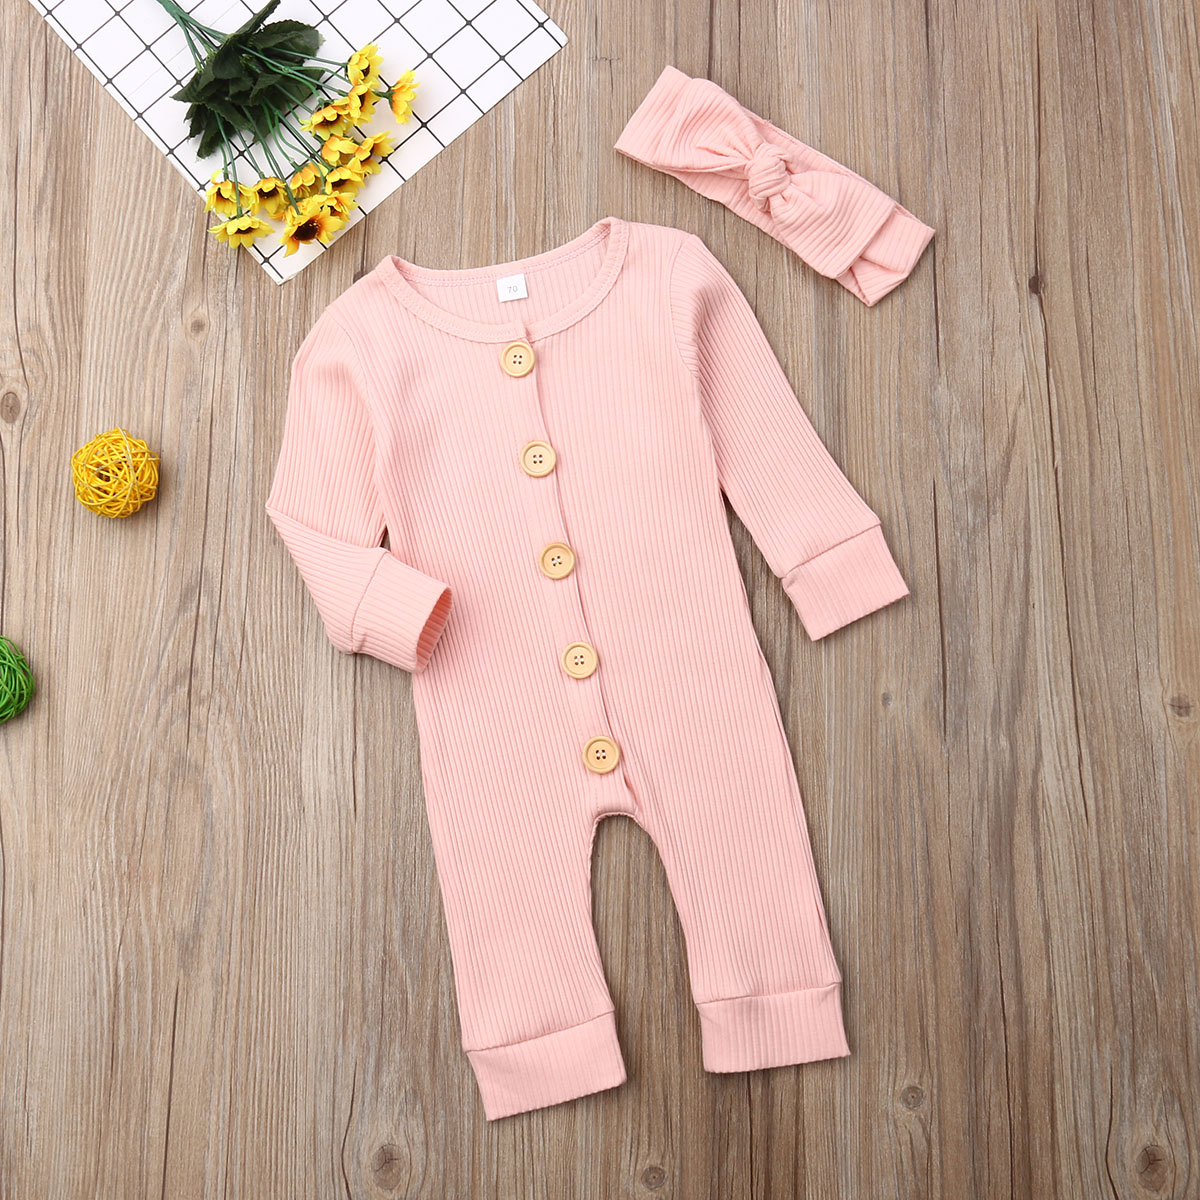 H8416485b11e9432fb04c2b6fd8b67e45t Spring Fall Newborn Baby Girl Boy Clothes Long Sleeve Knitted Romper + Headband Jumpsuit 2PCS Outfit 0-24M